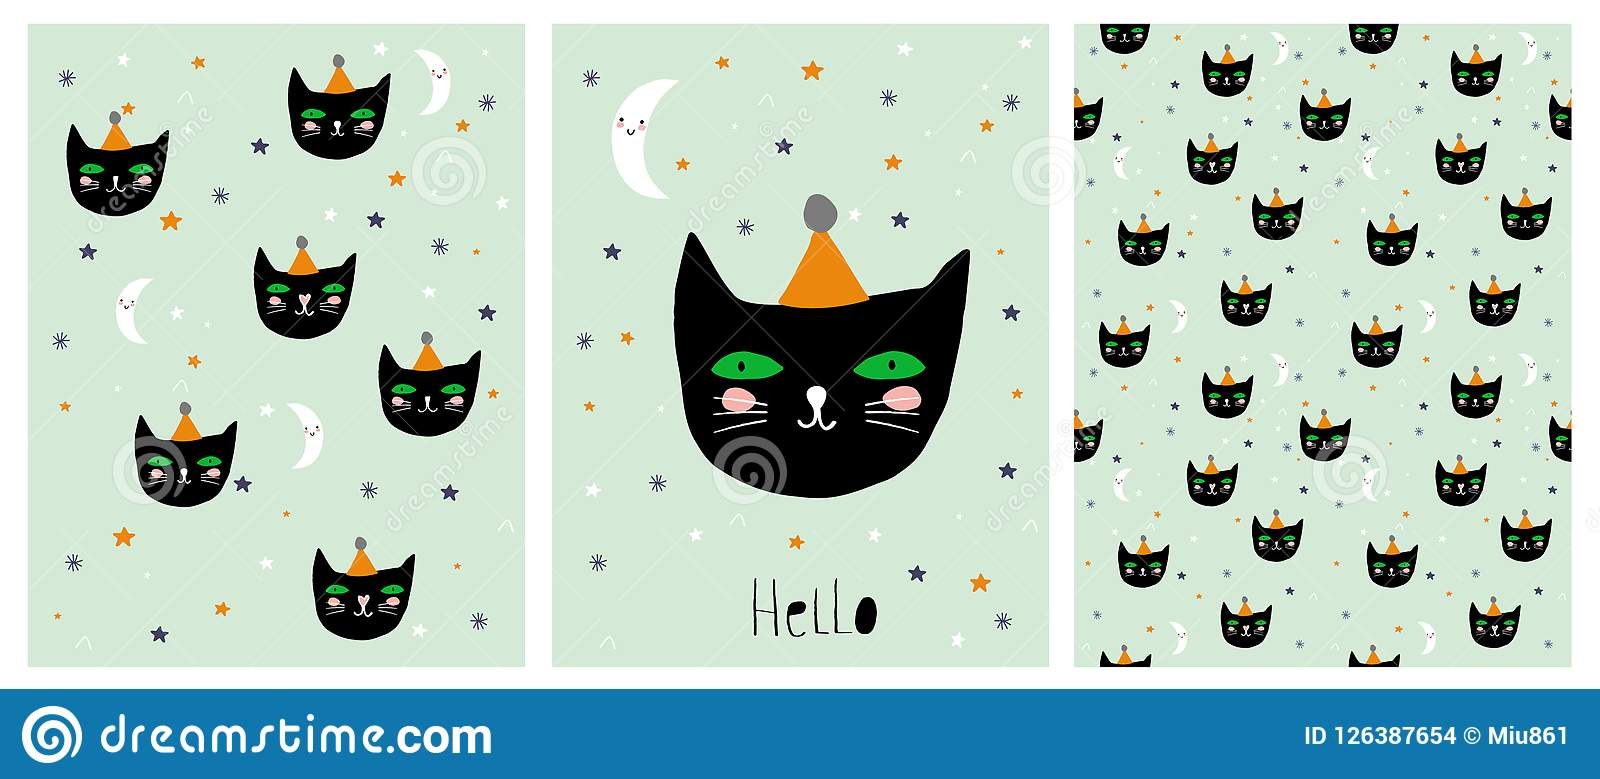 Cat Vector Illustration Set nera disegnata a mano divertente